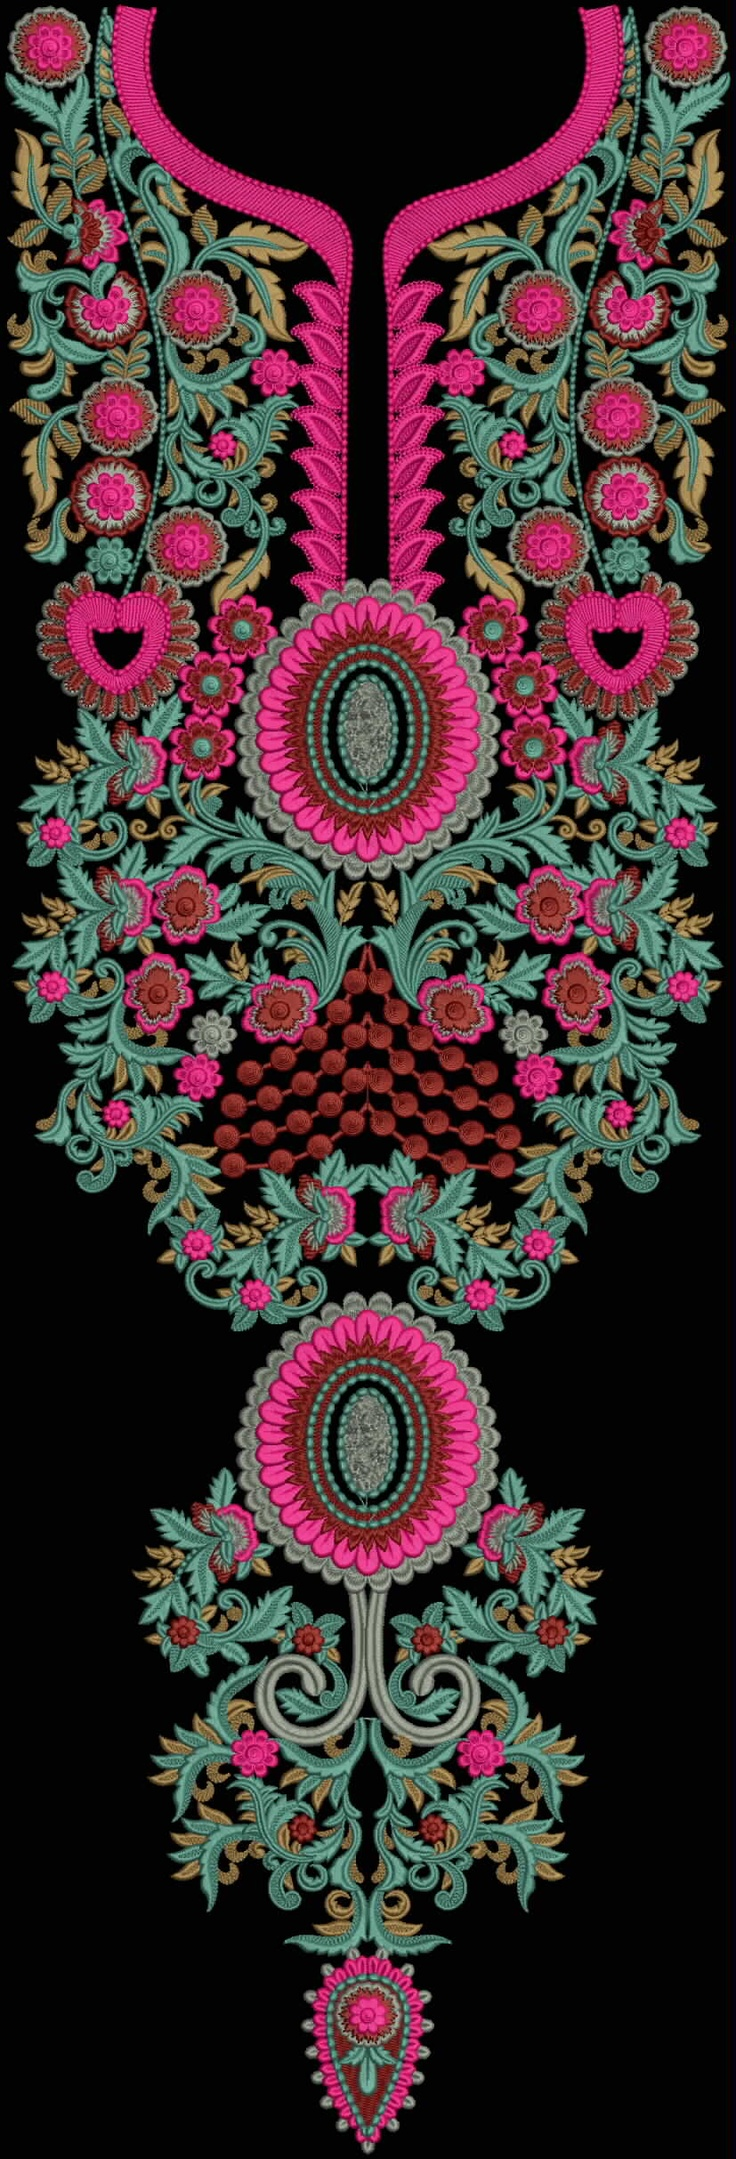 Latest Embroidery Designs For Sale, If U Want Embroidery Designs Plz Contact (Khalid Mahmood, +92-300-9406667)  www.embroiderydesignss.blogspot.com  Design# Ruksa4